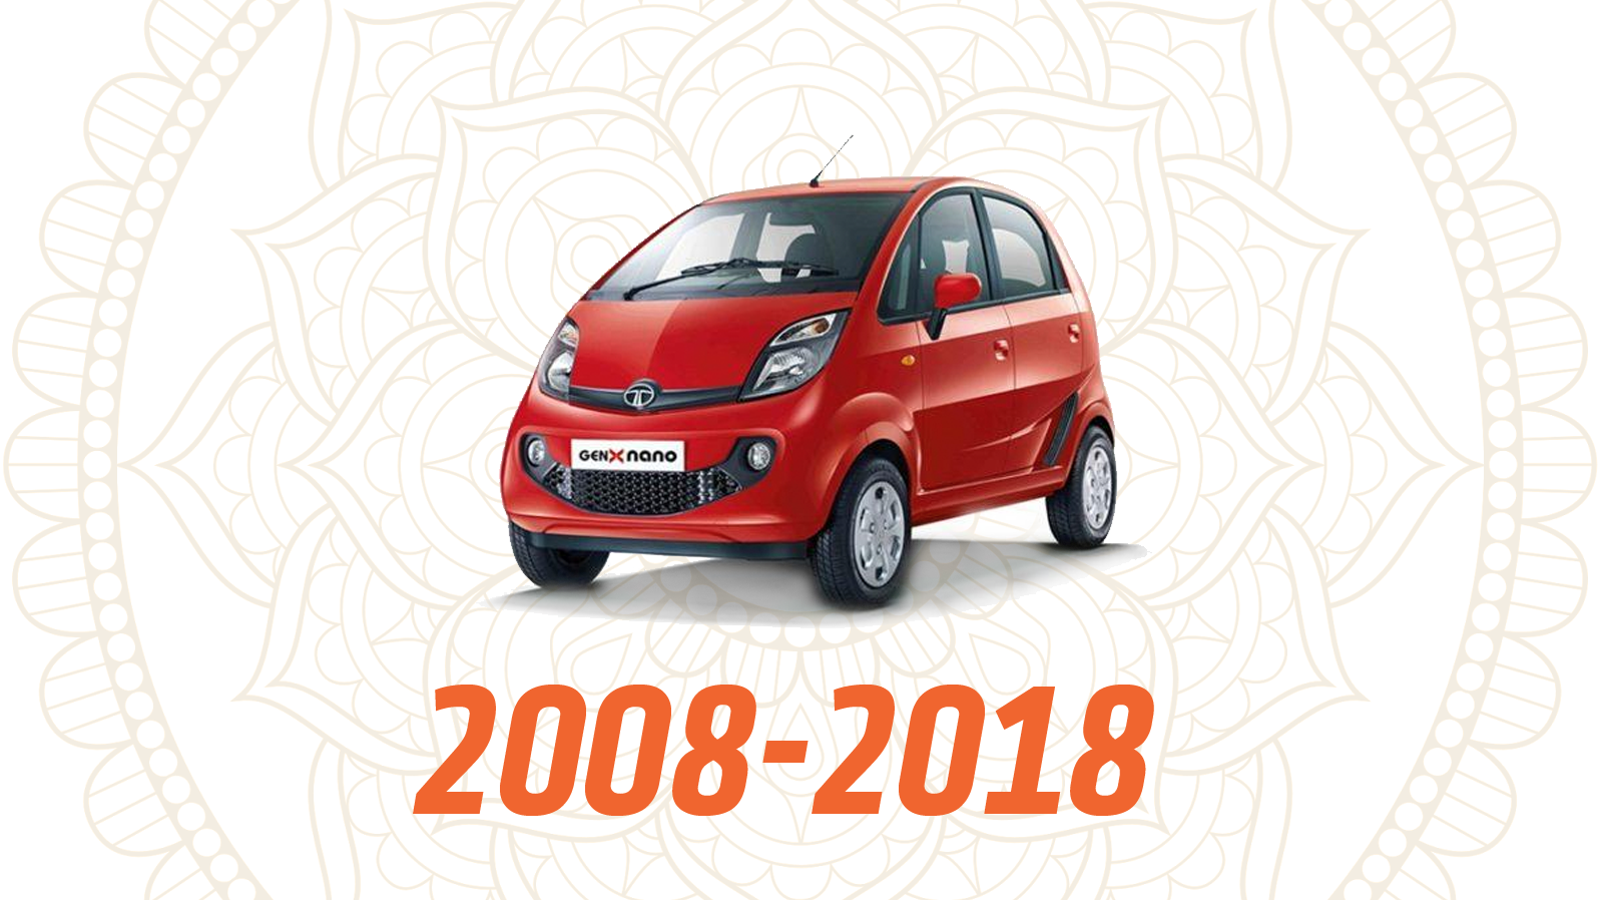 Goodbye Tata Nano, The World's Cheapest Car, You Deserved Better Than This